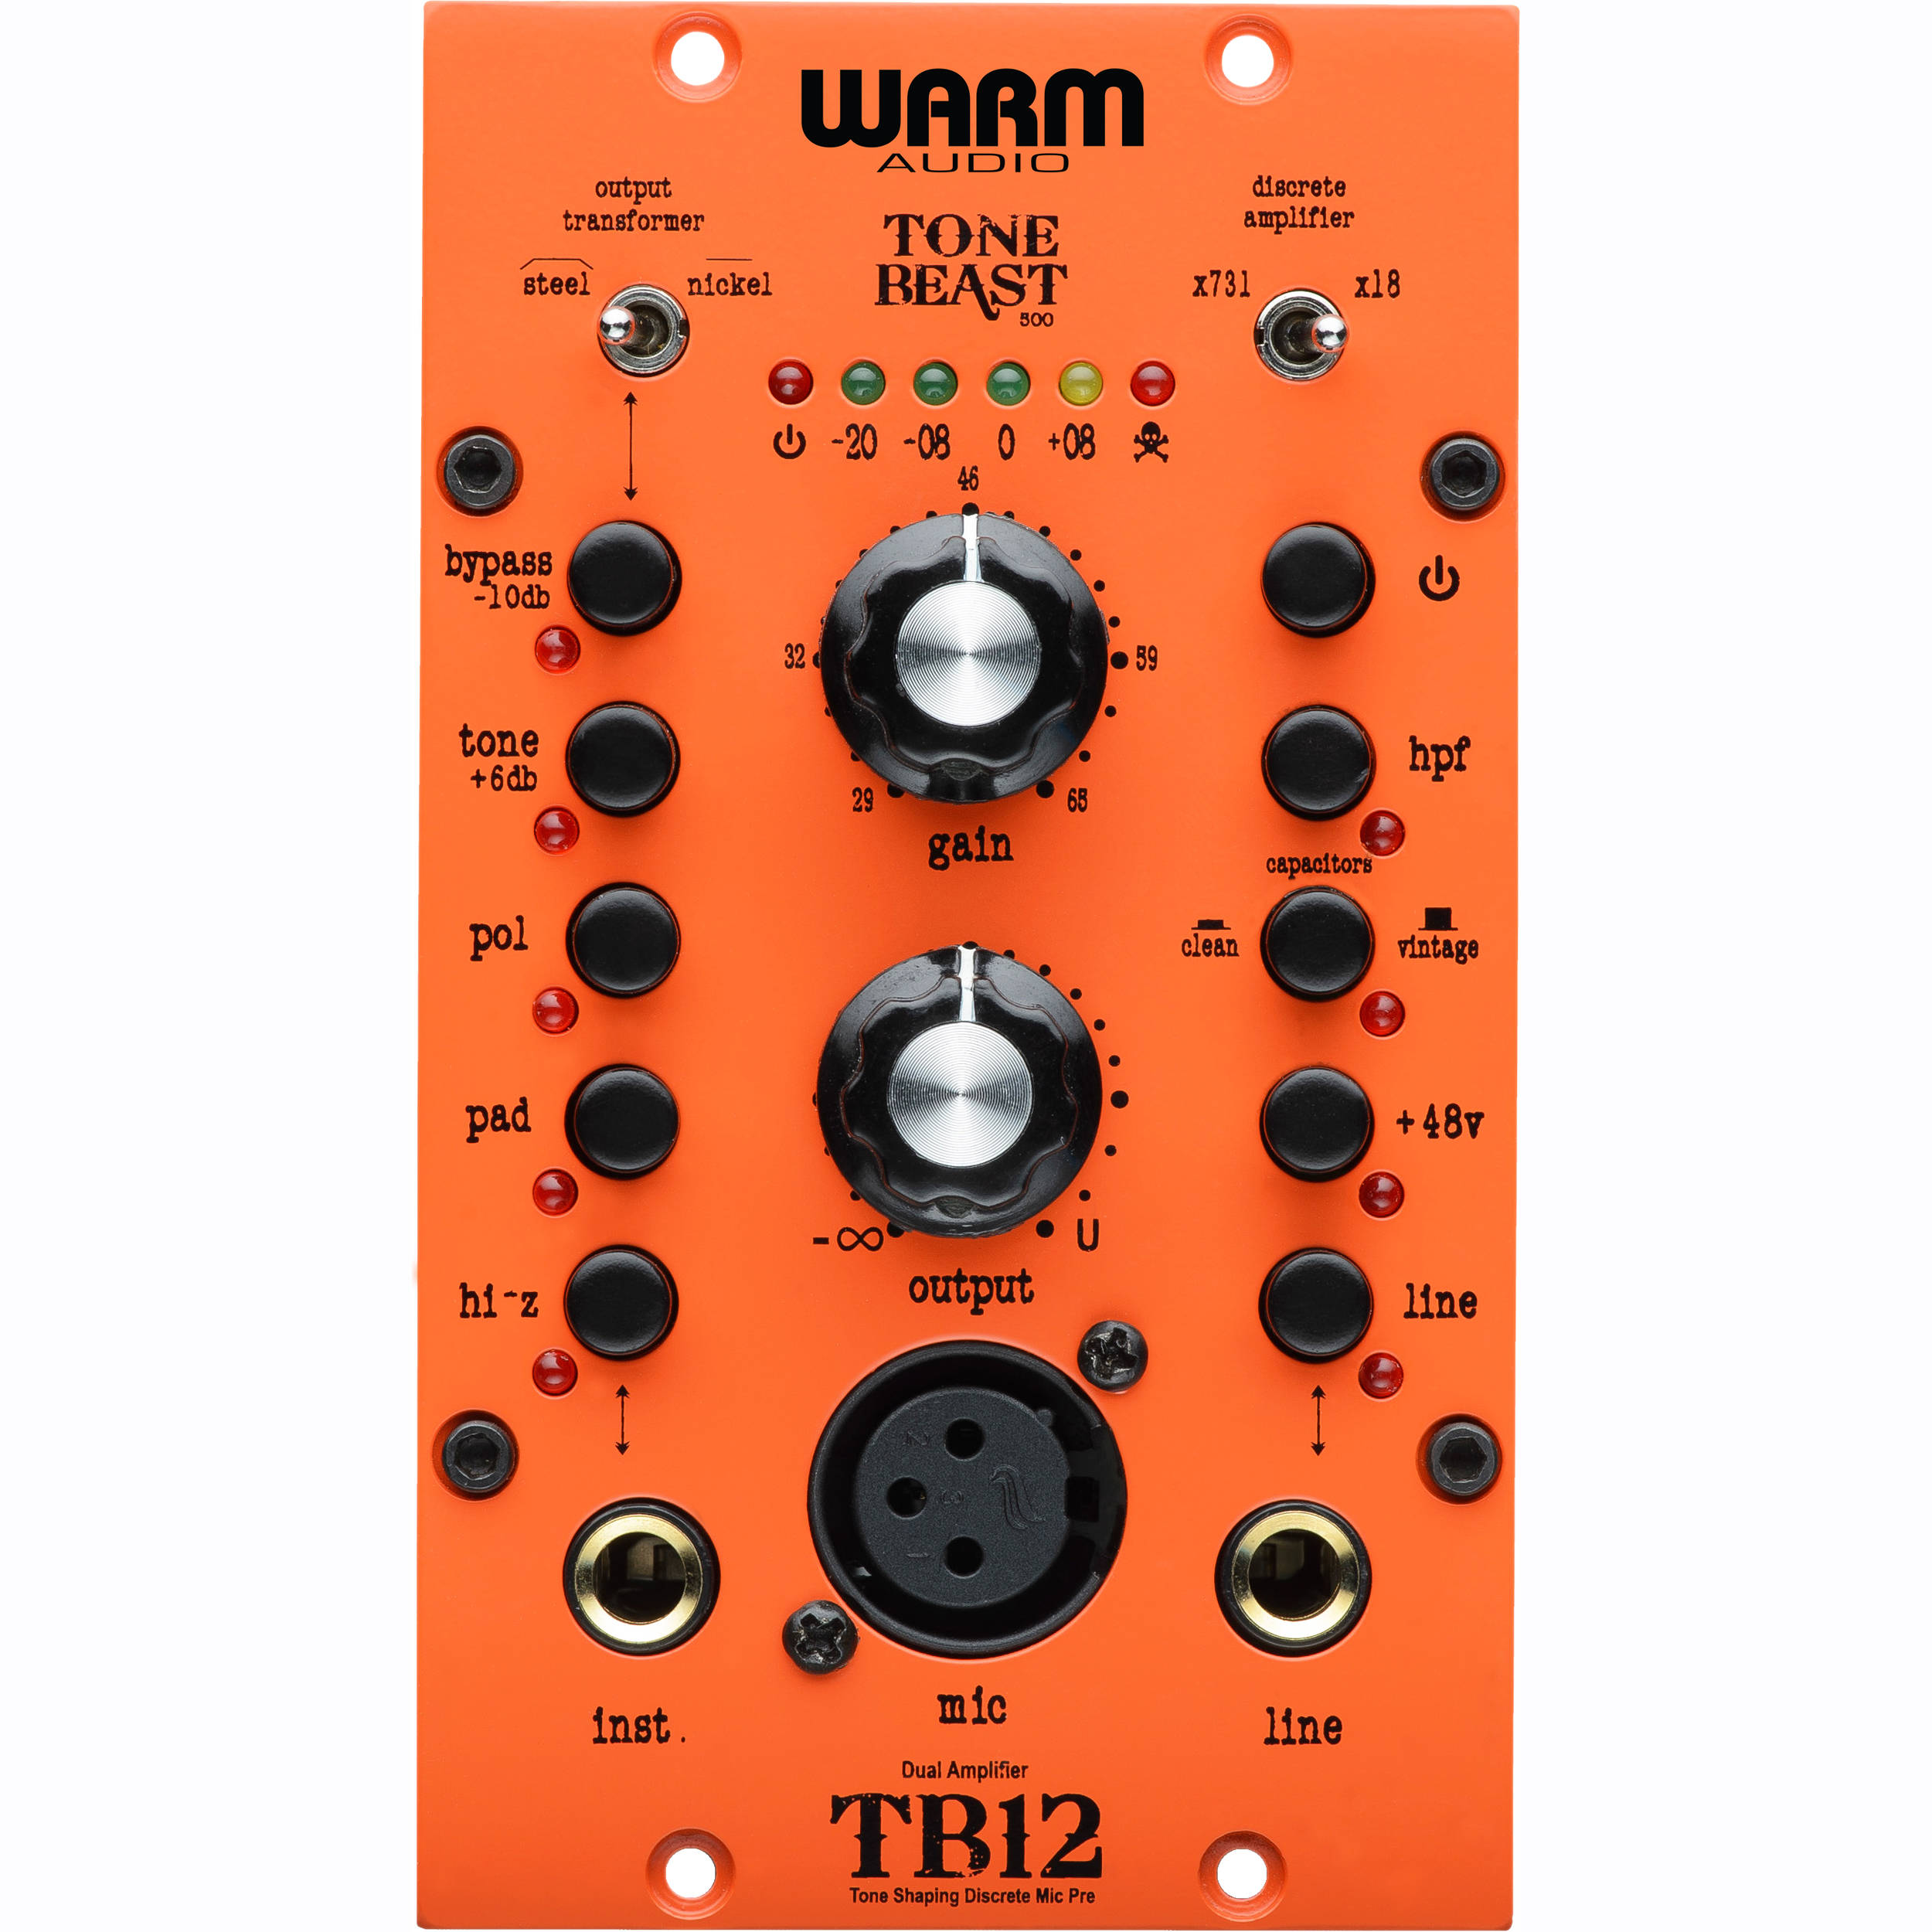 Warm Audio Tb12 500 Tone Beast Microphone Bh Photo Preamplifier For Series Rack